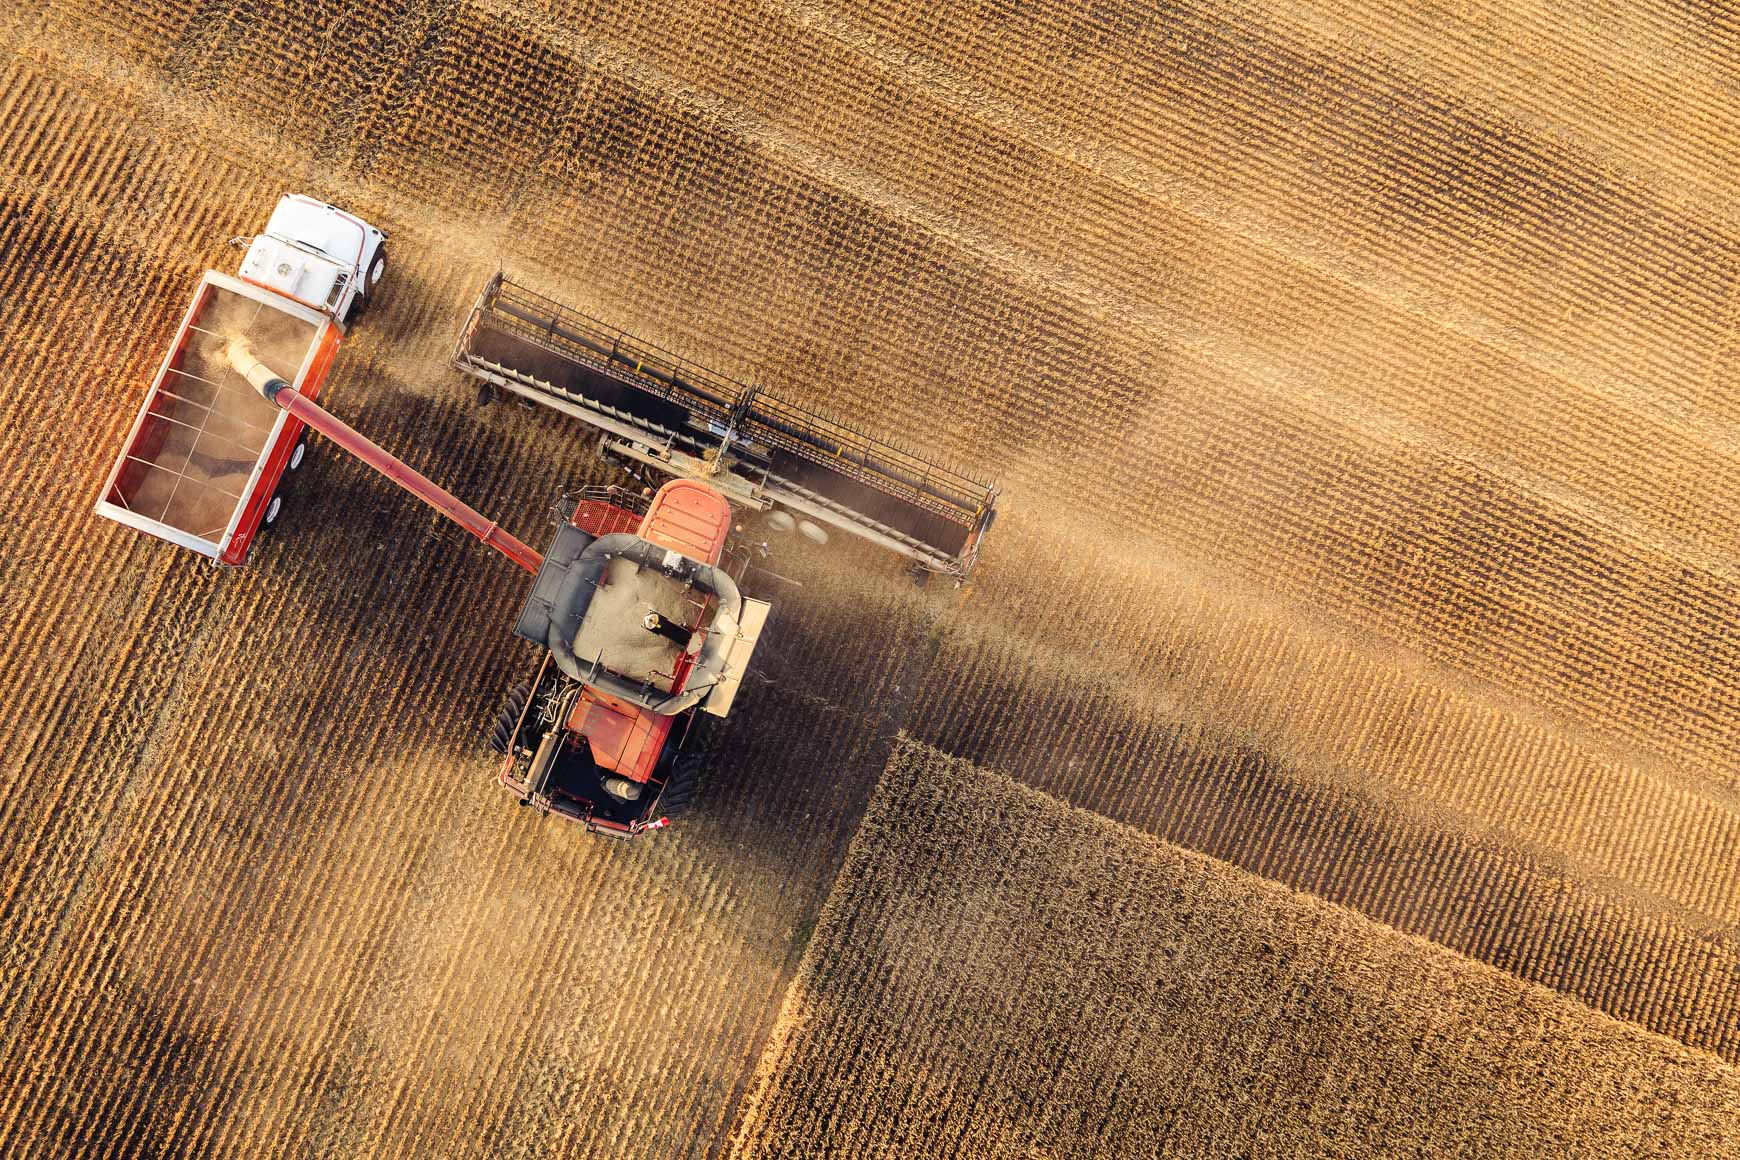 Michael Kunde Photo | Shell | Rotella | Overview | Agriculture